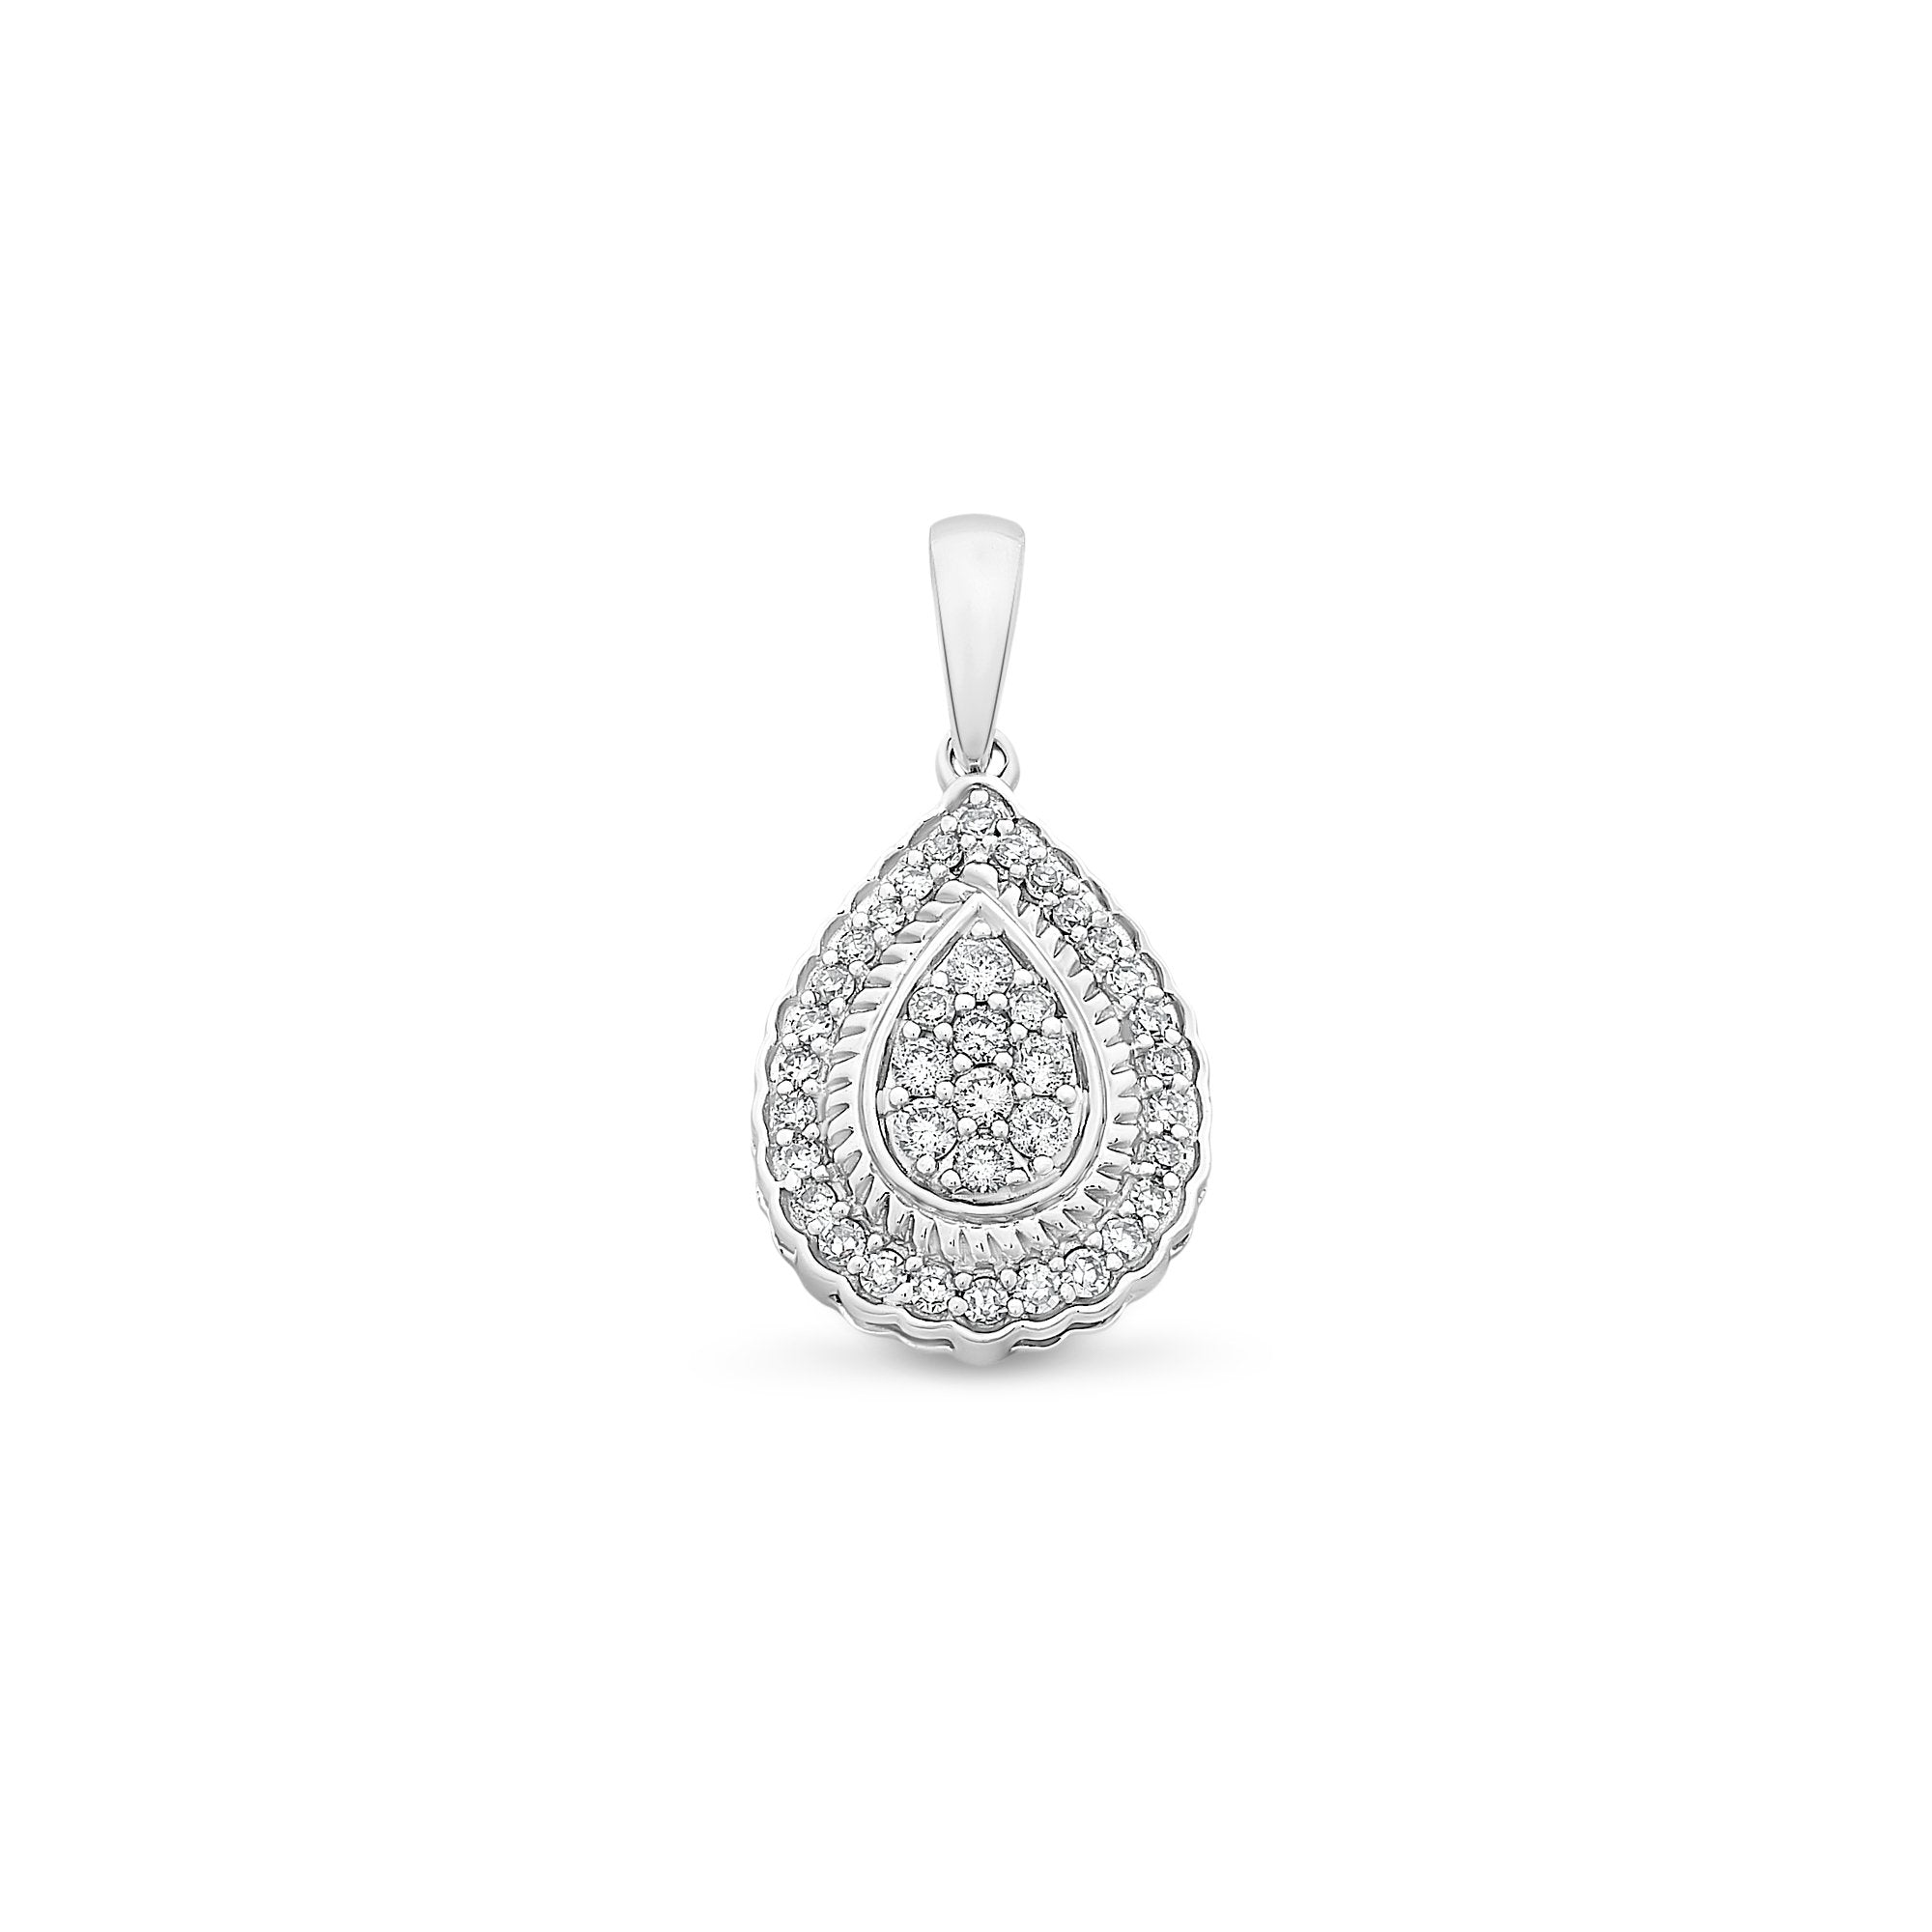 9ct White Gold 0.20ct TDW Diamond Pendant With Complimentary Chain